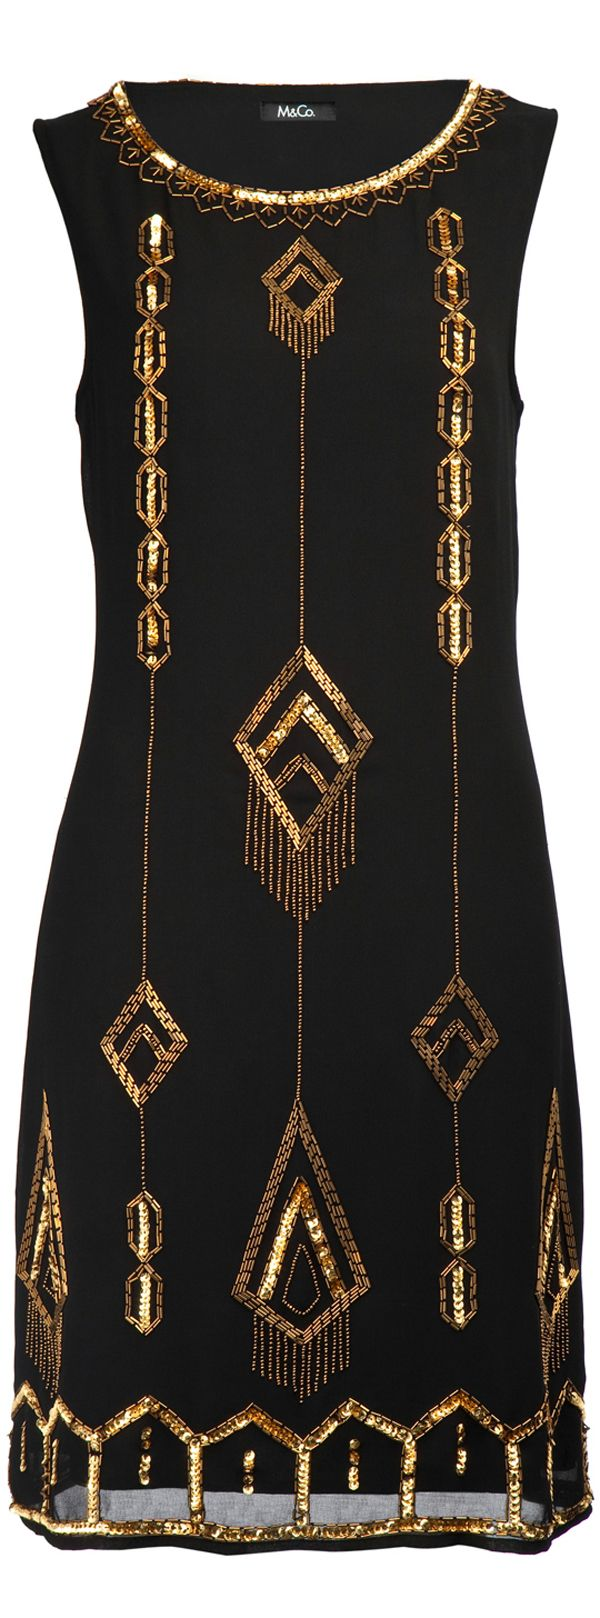 Read about 1920's fashion trend - art deco dress M and Co - CLICK TO READ ARTICLE at http://boomerinas.com/2013/05/roaring-twenties-flapper-fashions/